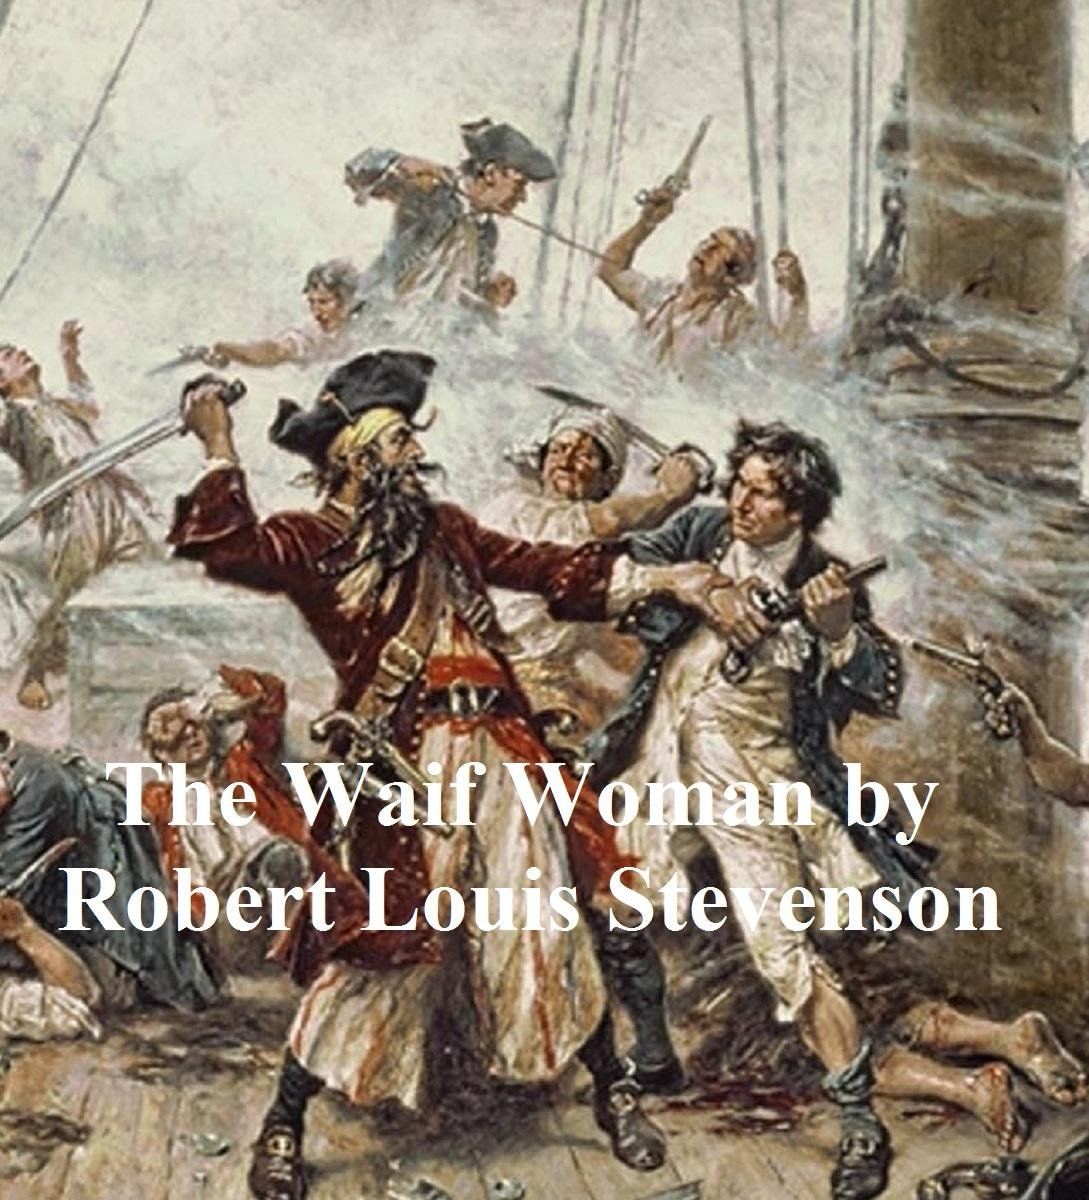 The Waif Woman, a short story